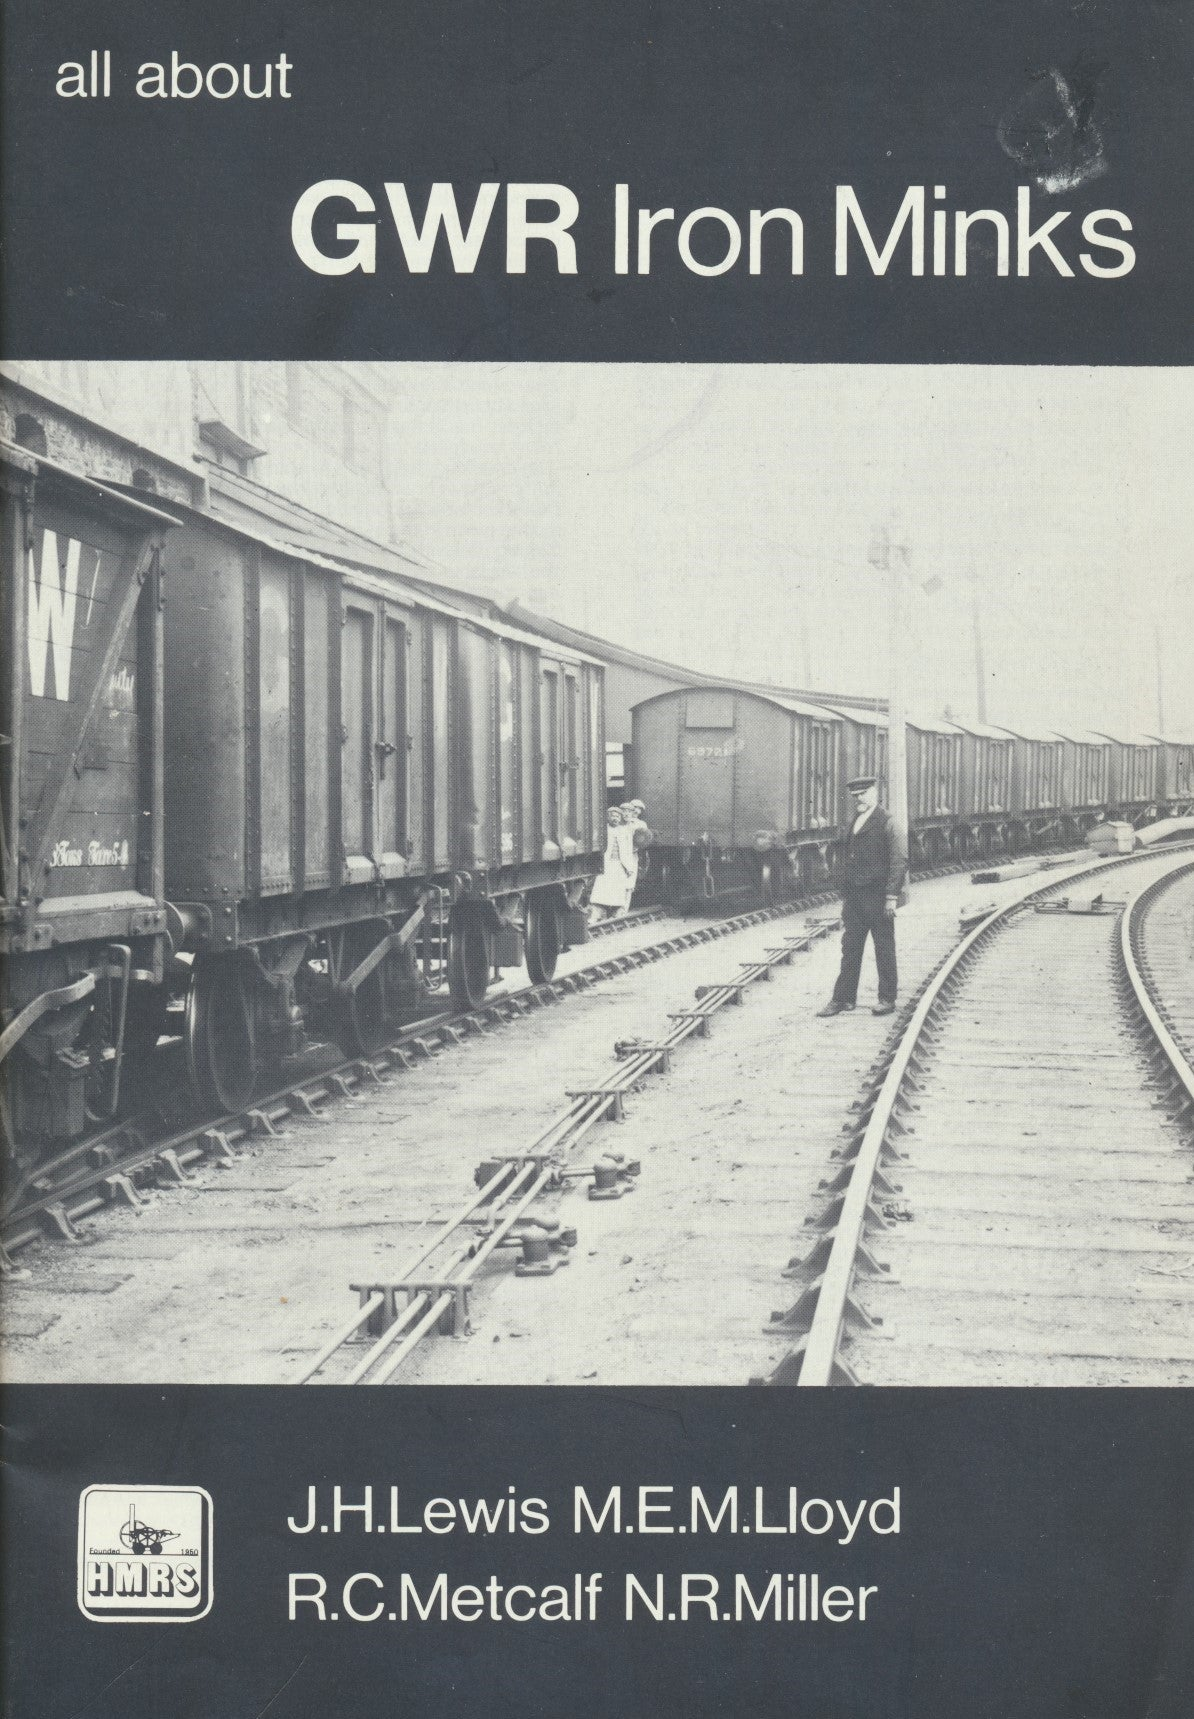 All About GWR Iron Minks